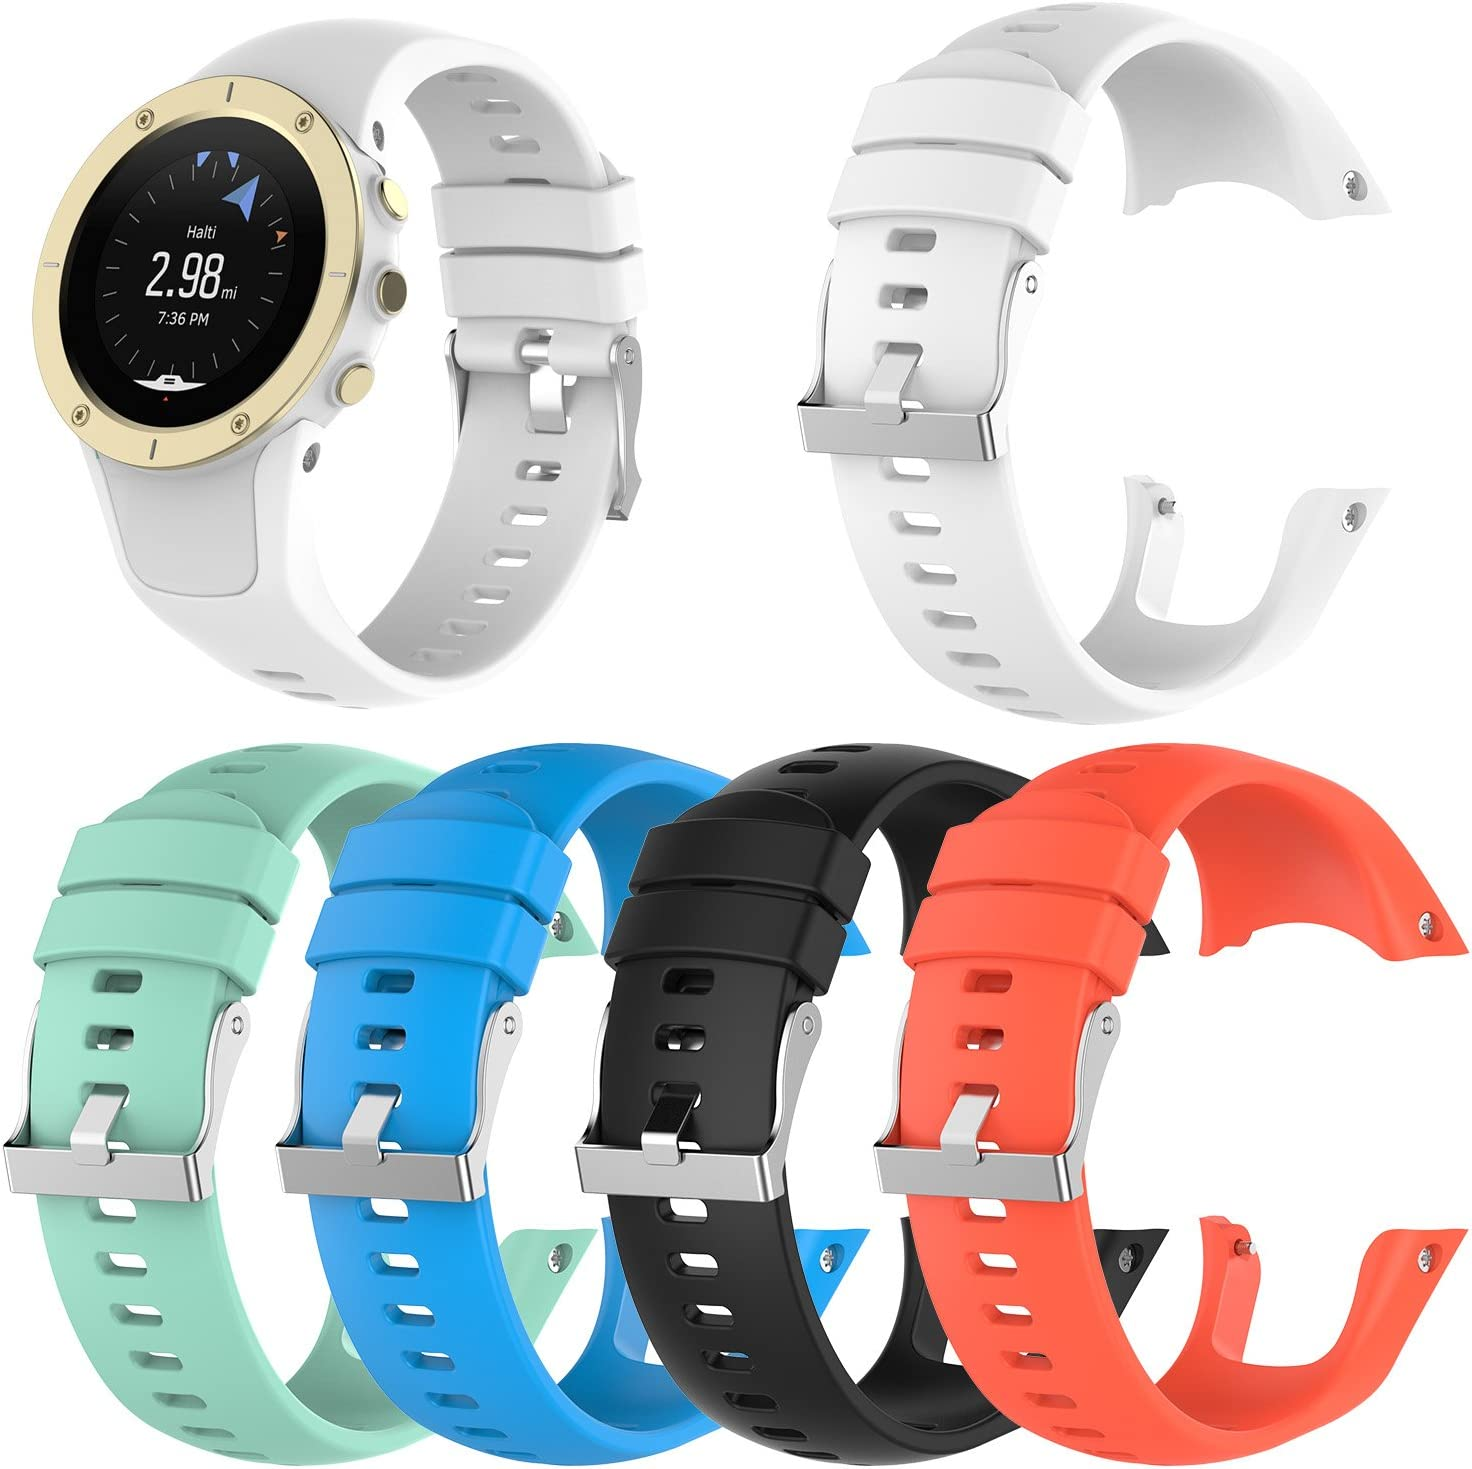 Replacement Soft Silicone Wristband Strap with Metal Buckle for Suunto Spartan Trainer Wrist HR QGHXO Band for Suunto Spartan Trainer Wrist HR